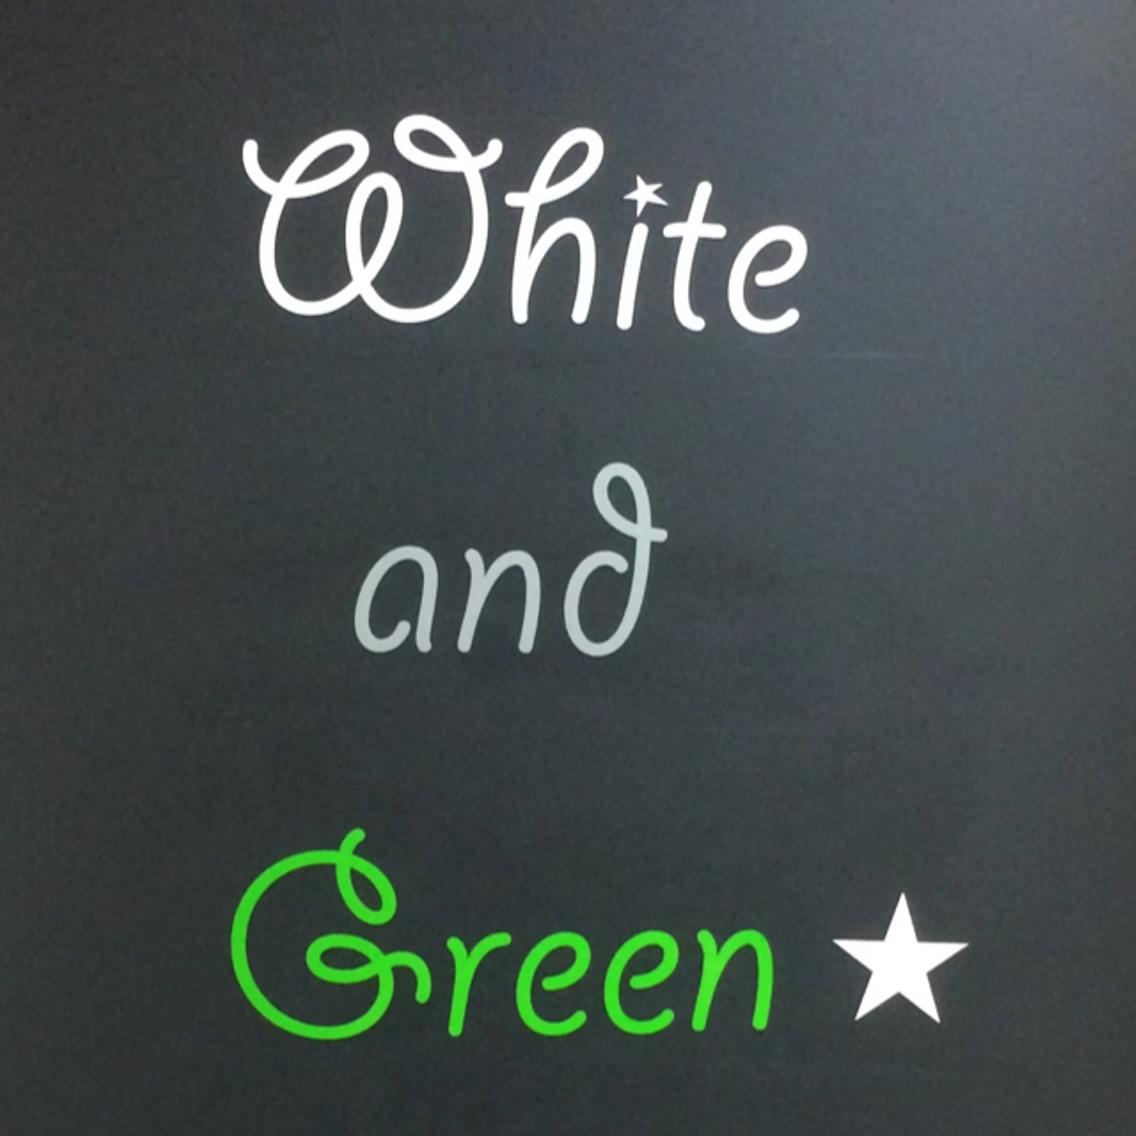 White and Green所属・Whiteand Greenの掲載